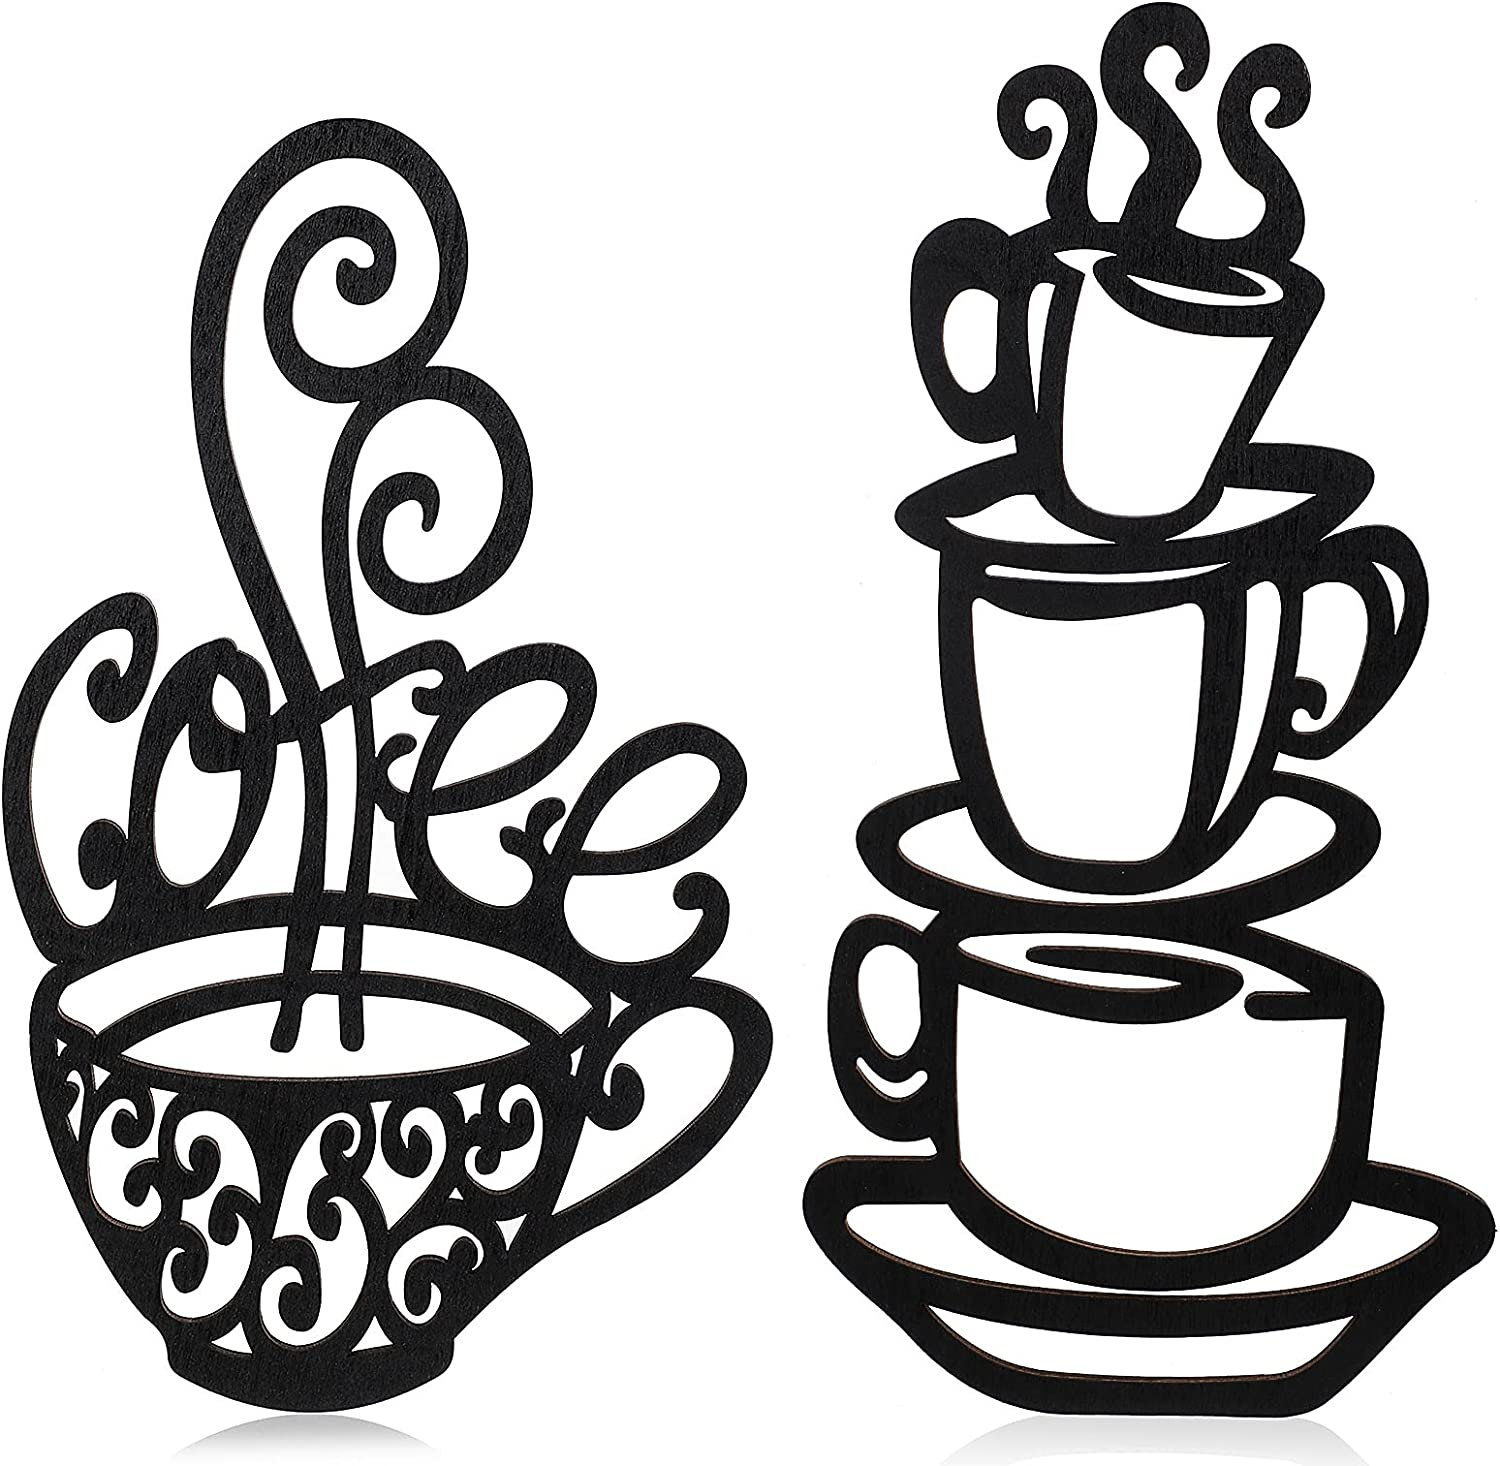 2 Pieces Metal Coffee Cup Wall Decor Black Coffee Cup Silhouette Metal Wall Art Cafe Themed Wall Art Cup Mug Scrolled Silhouette Metal Wall Art Decor for Coffee Shop, Kitchen, Restaurant